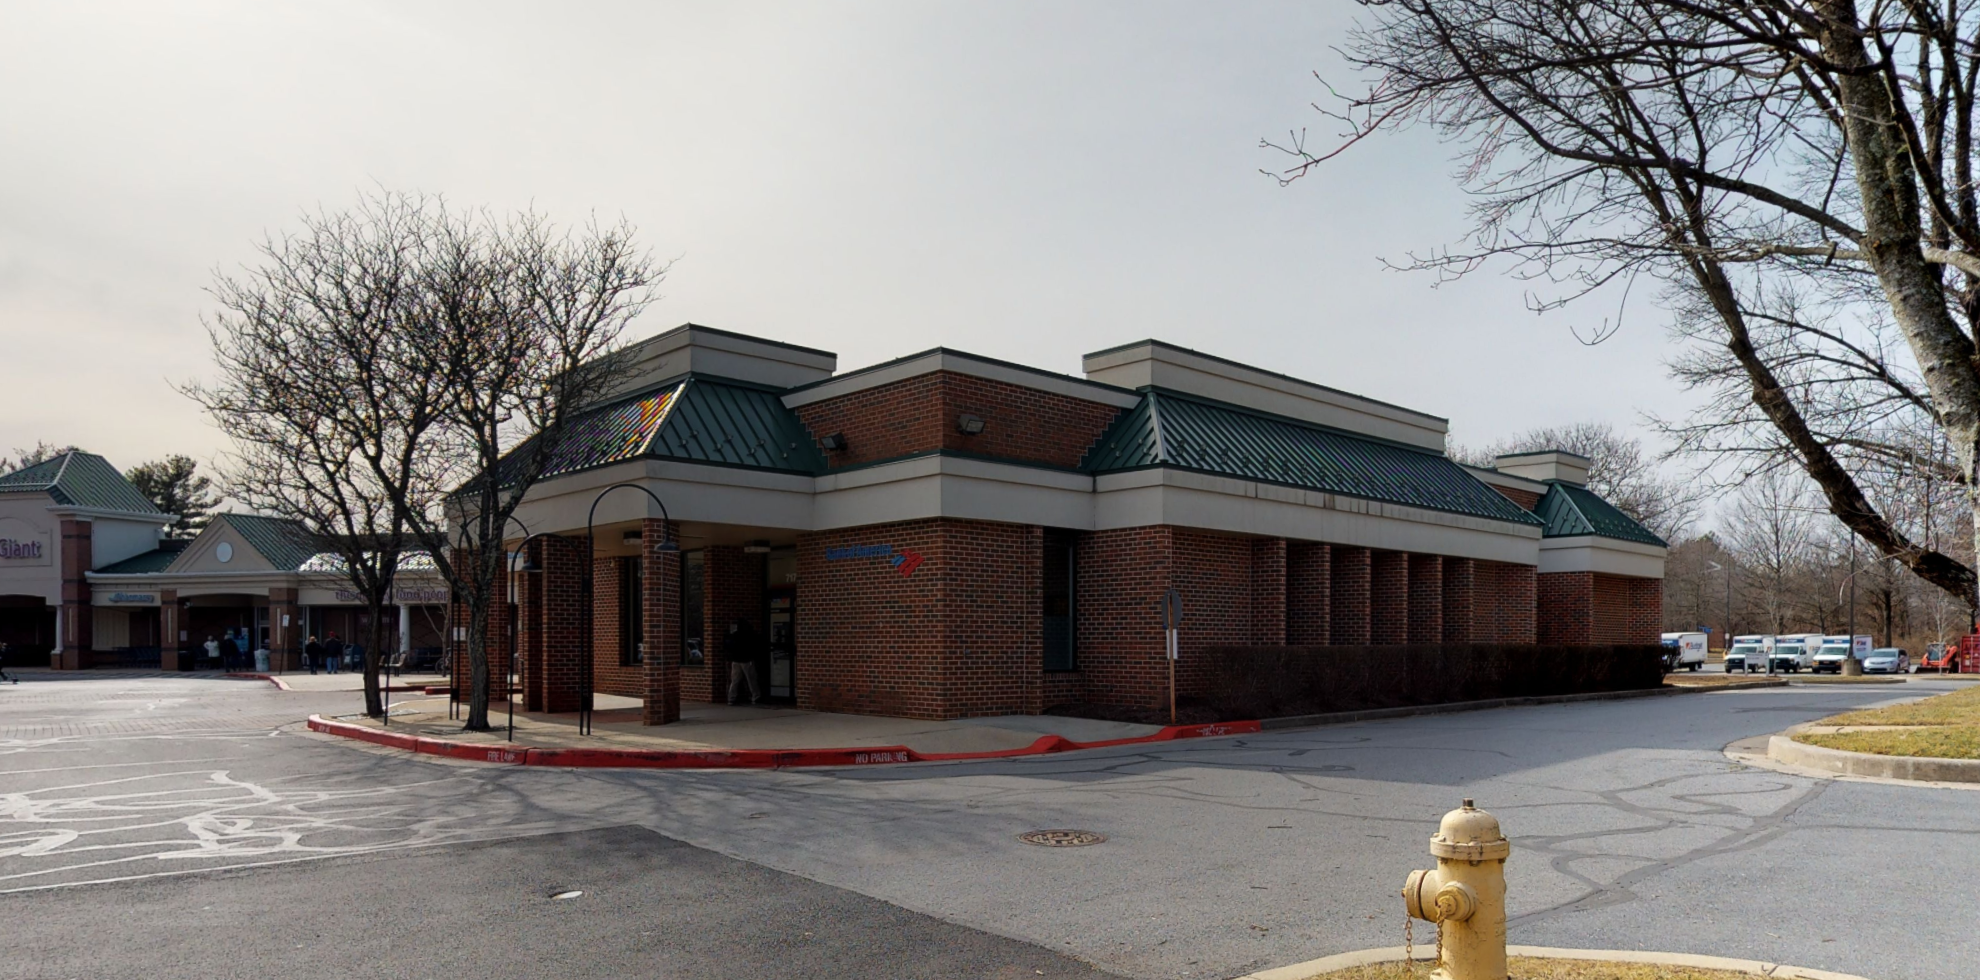 Bank of America financial center with drive-thru ATM and teller   7170 Cradlerock Way, Columbia, MD 21045